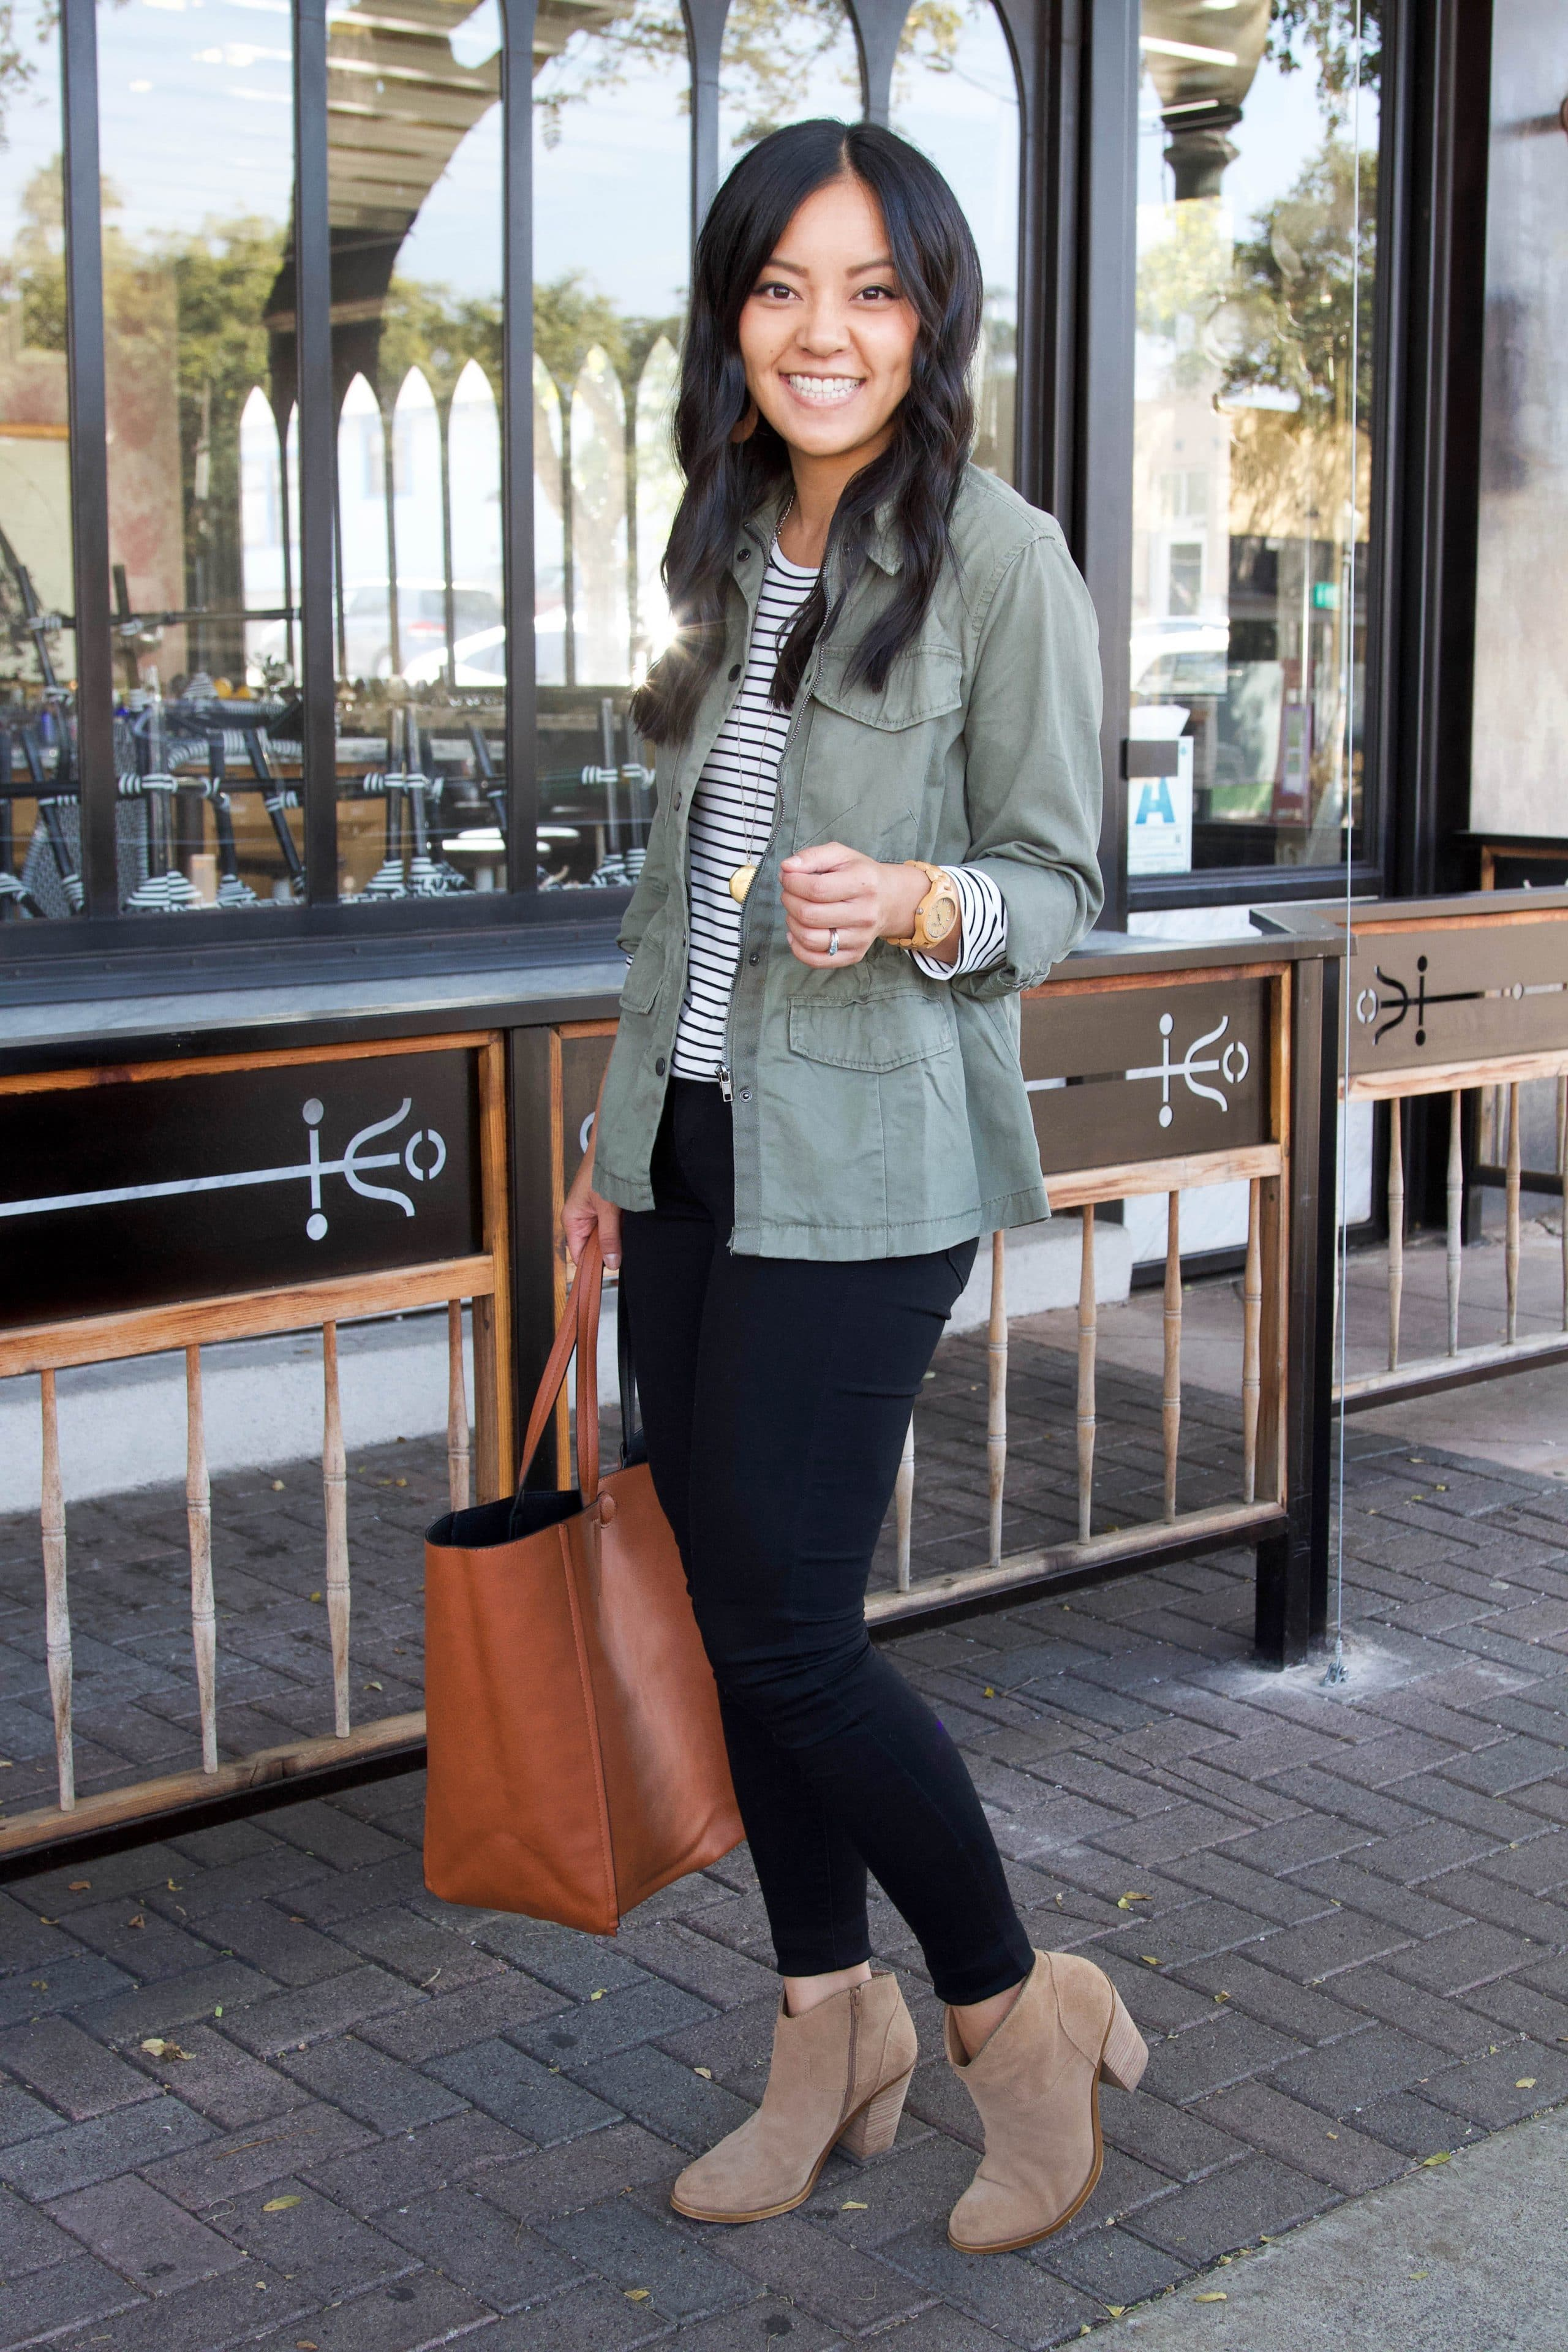 utility jacket + striped tee + black jeans + taupe booties casual fall outfit